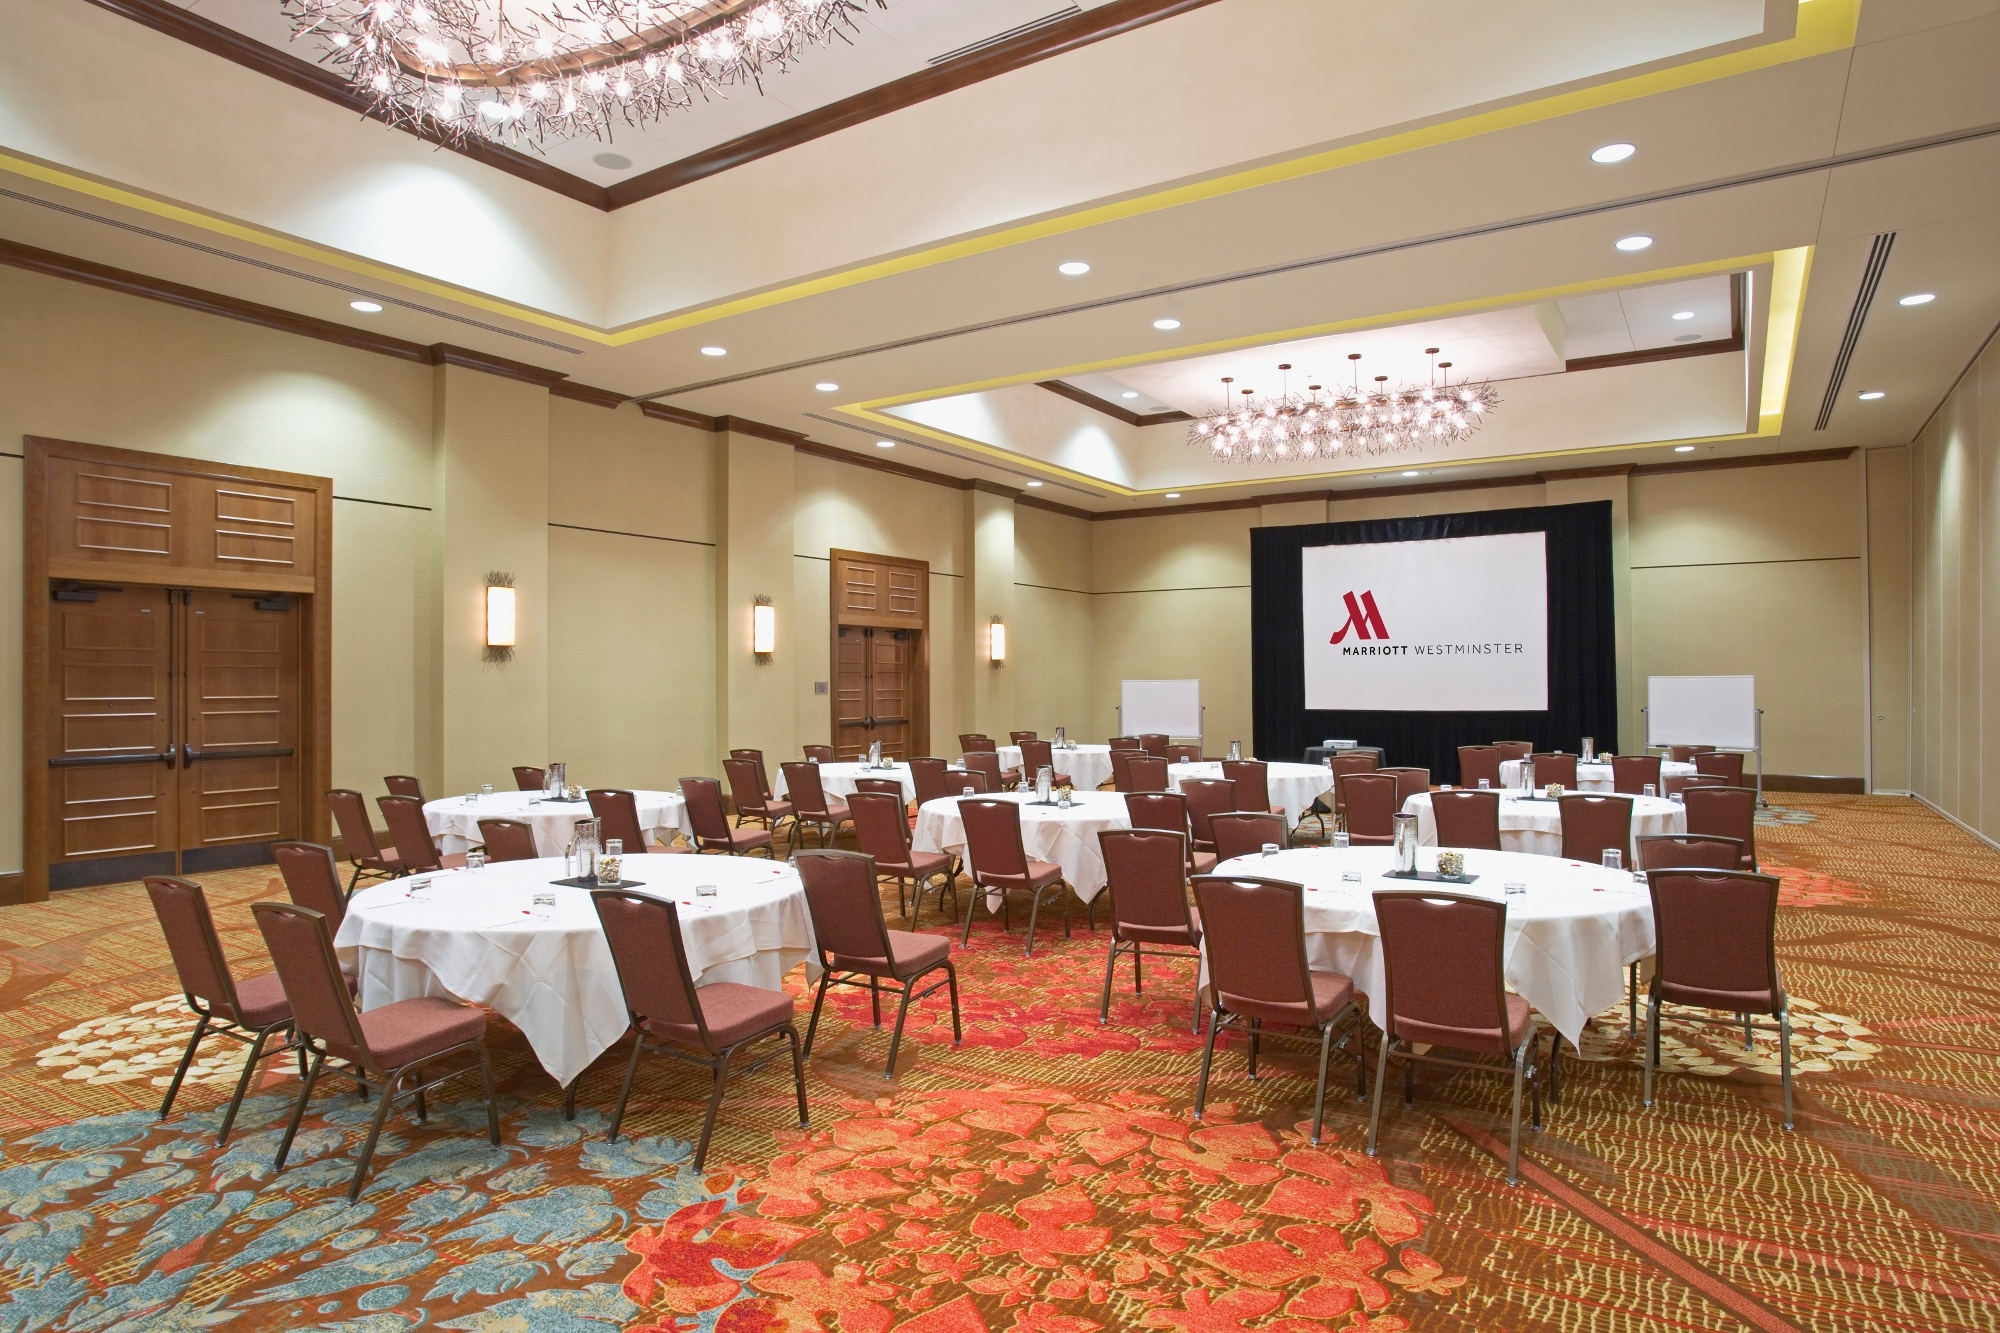 Denver Marriott Westminster image 24